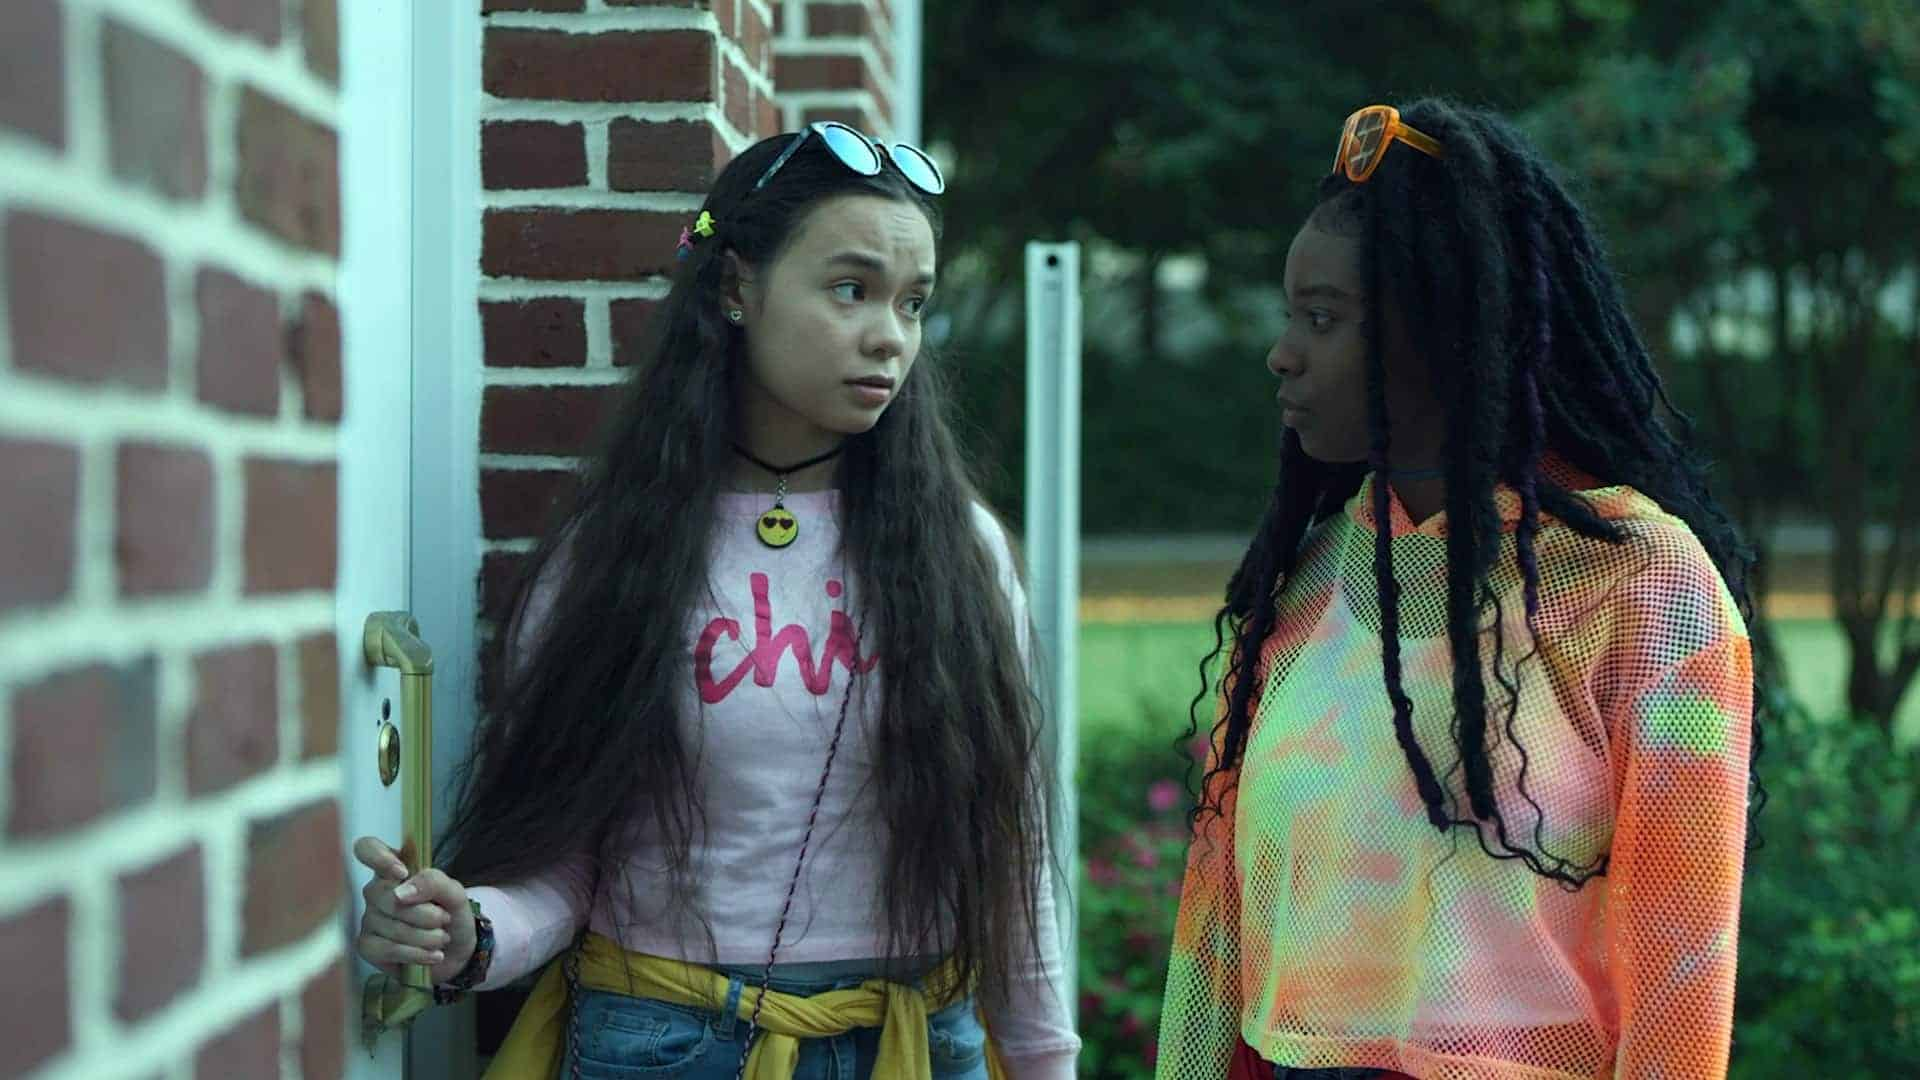 Gabby (Gabriella Pastore) and Lulu (Ja'ness Tate) about to reveal the results of their investigation.